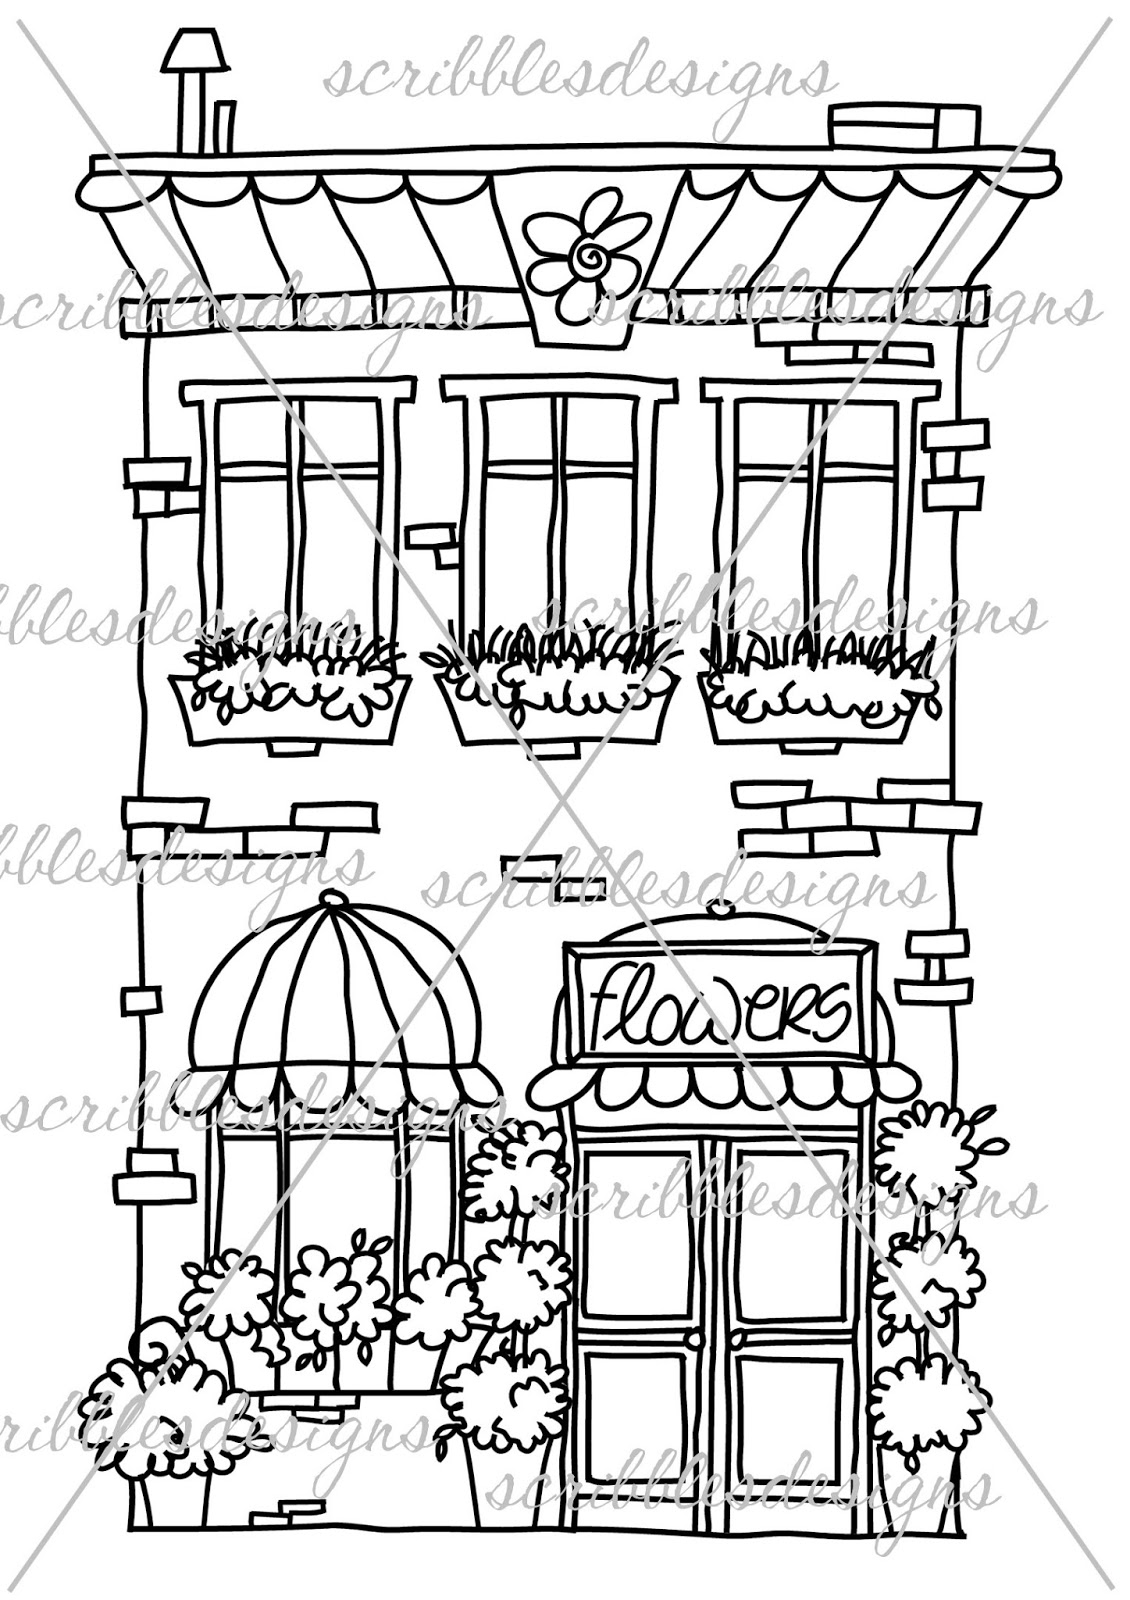 http://buyscribblesdesigns.blogspot.ca/2014/12/860-flower-shop-400.html